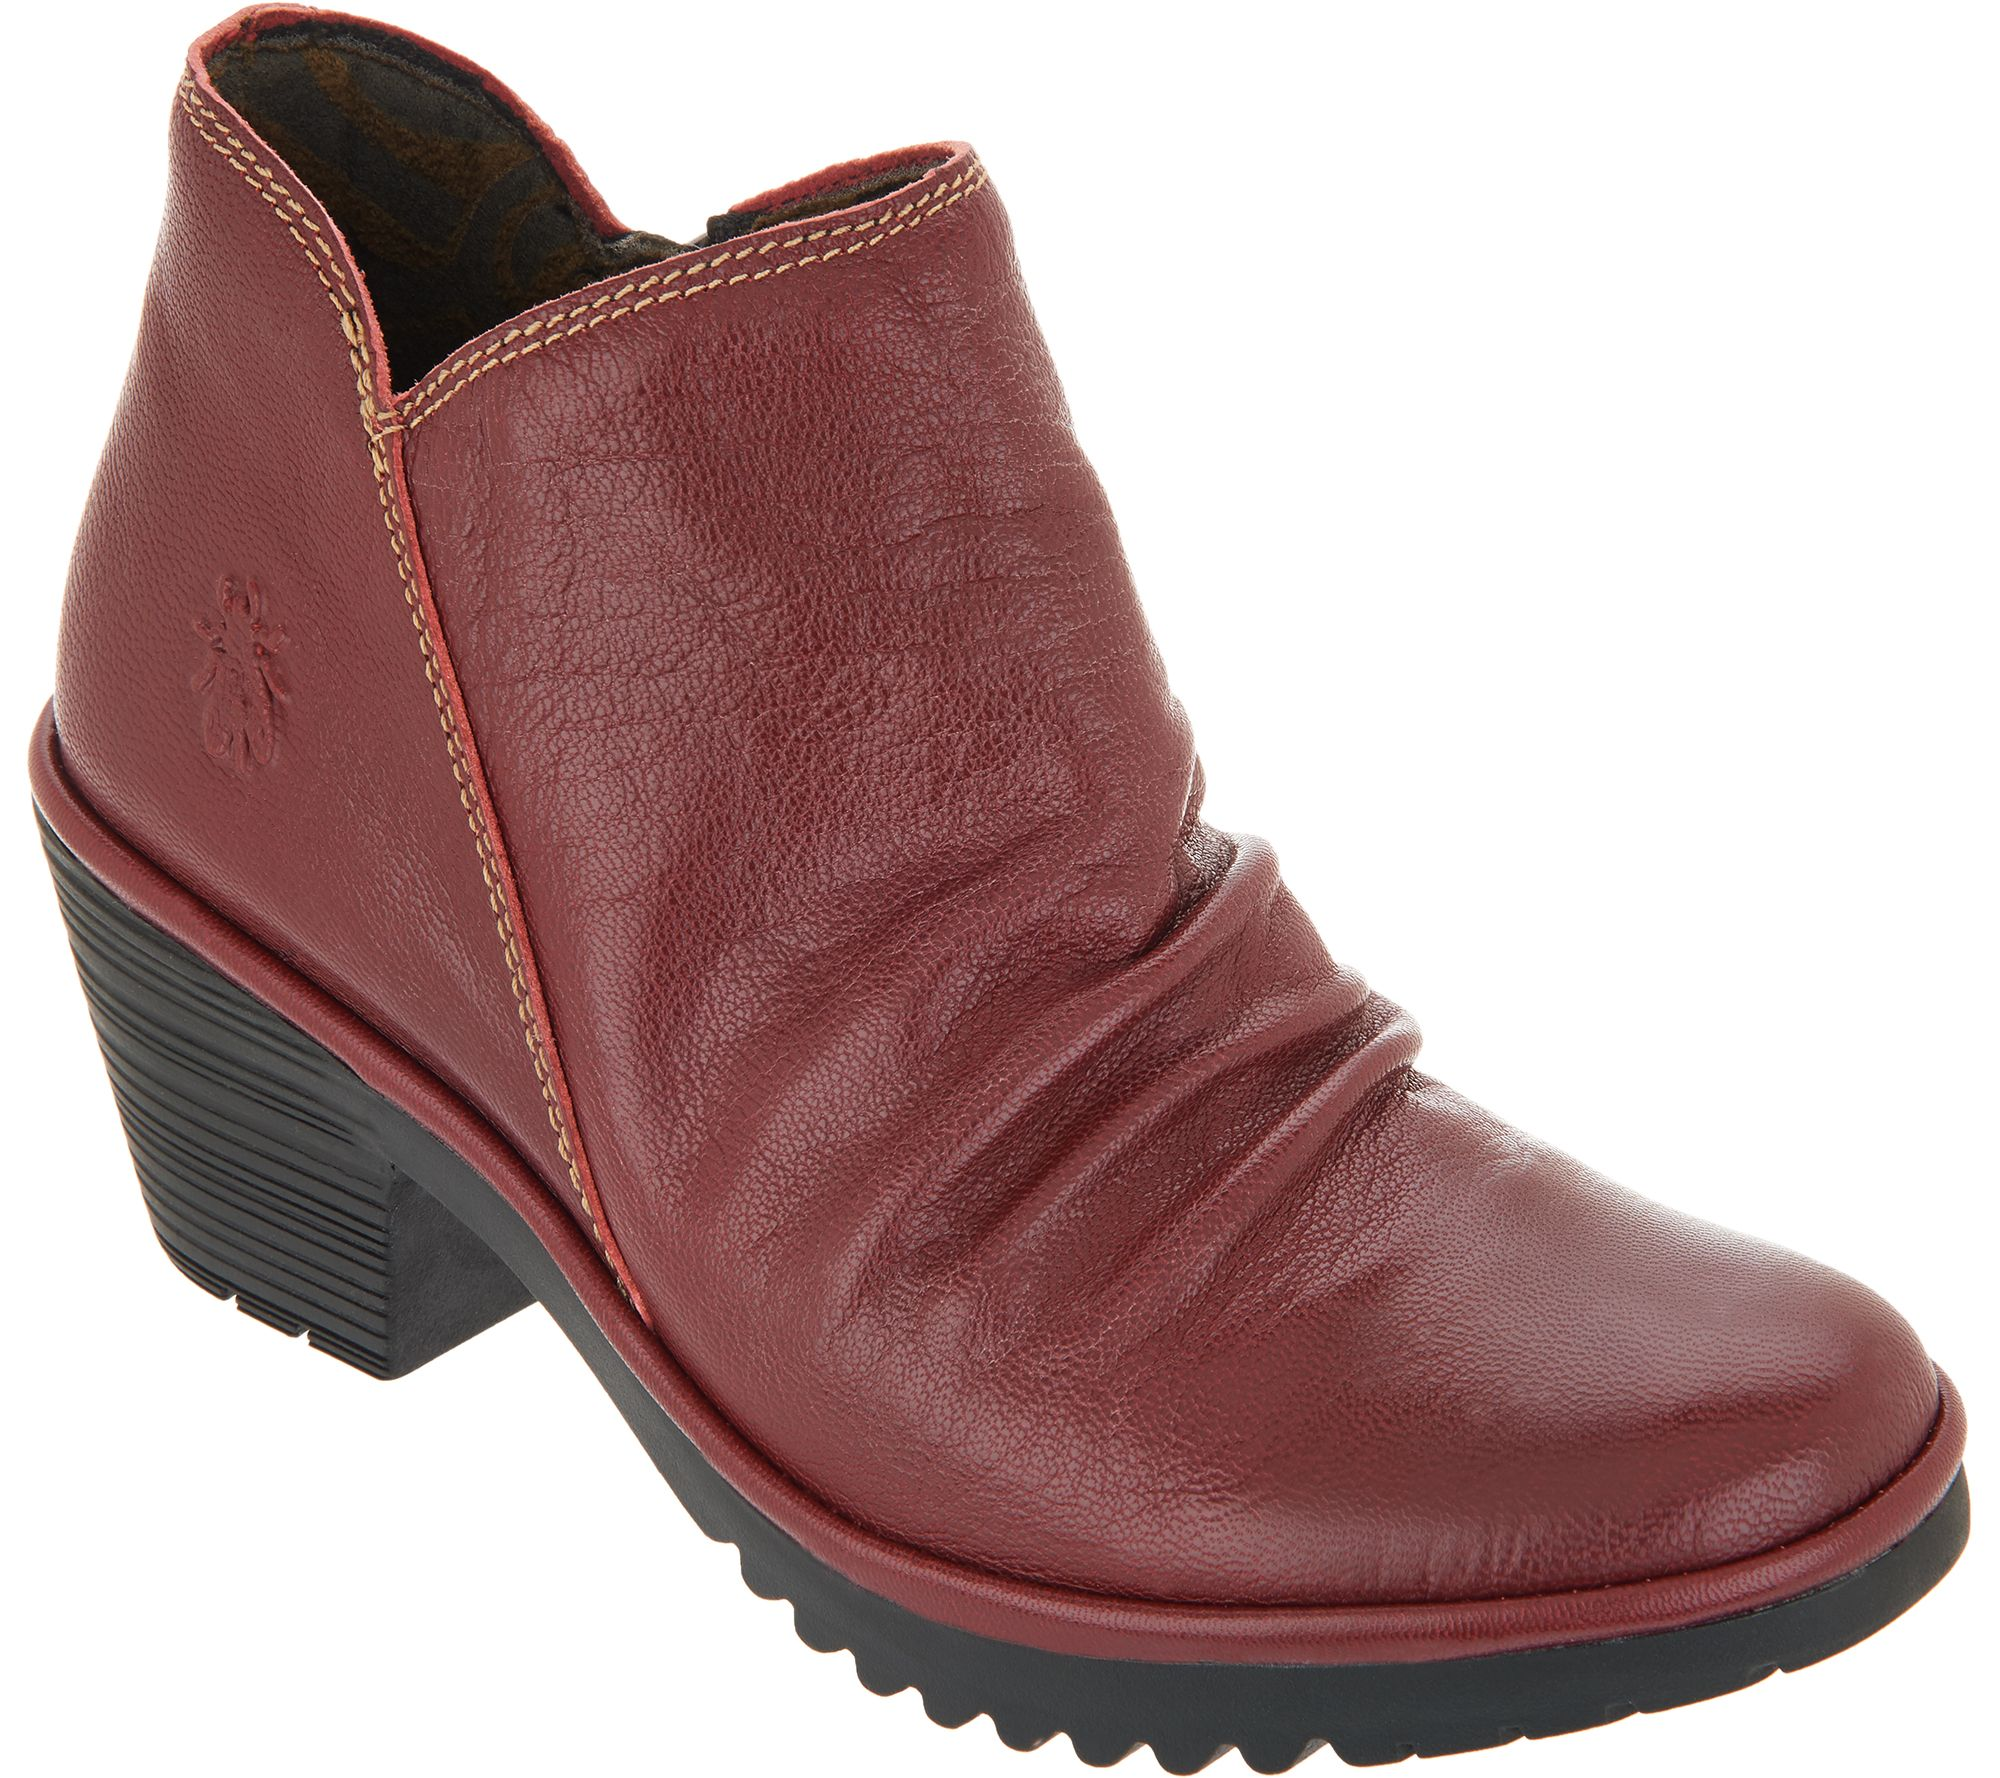 19c5c2ed263 FLY London Leather Ruched Ankle Boots - Wezo - Page 1 — QVC.com